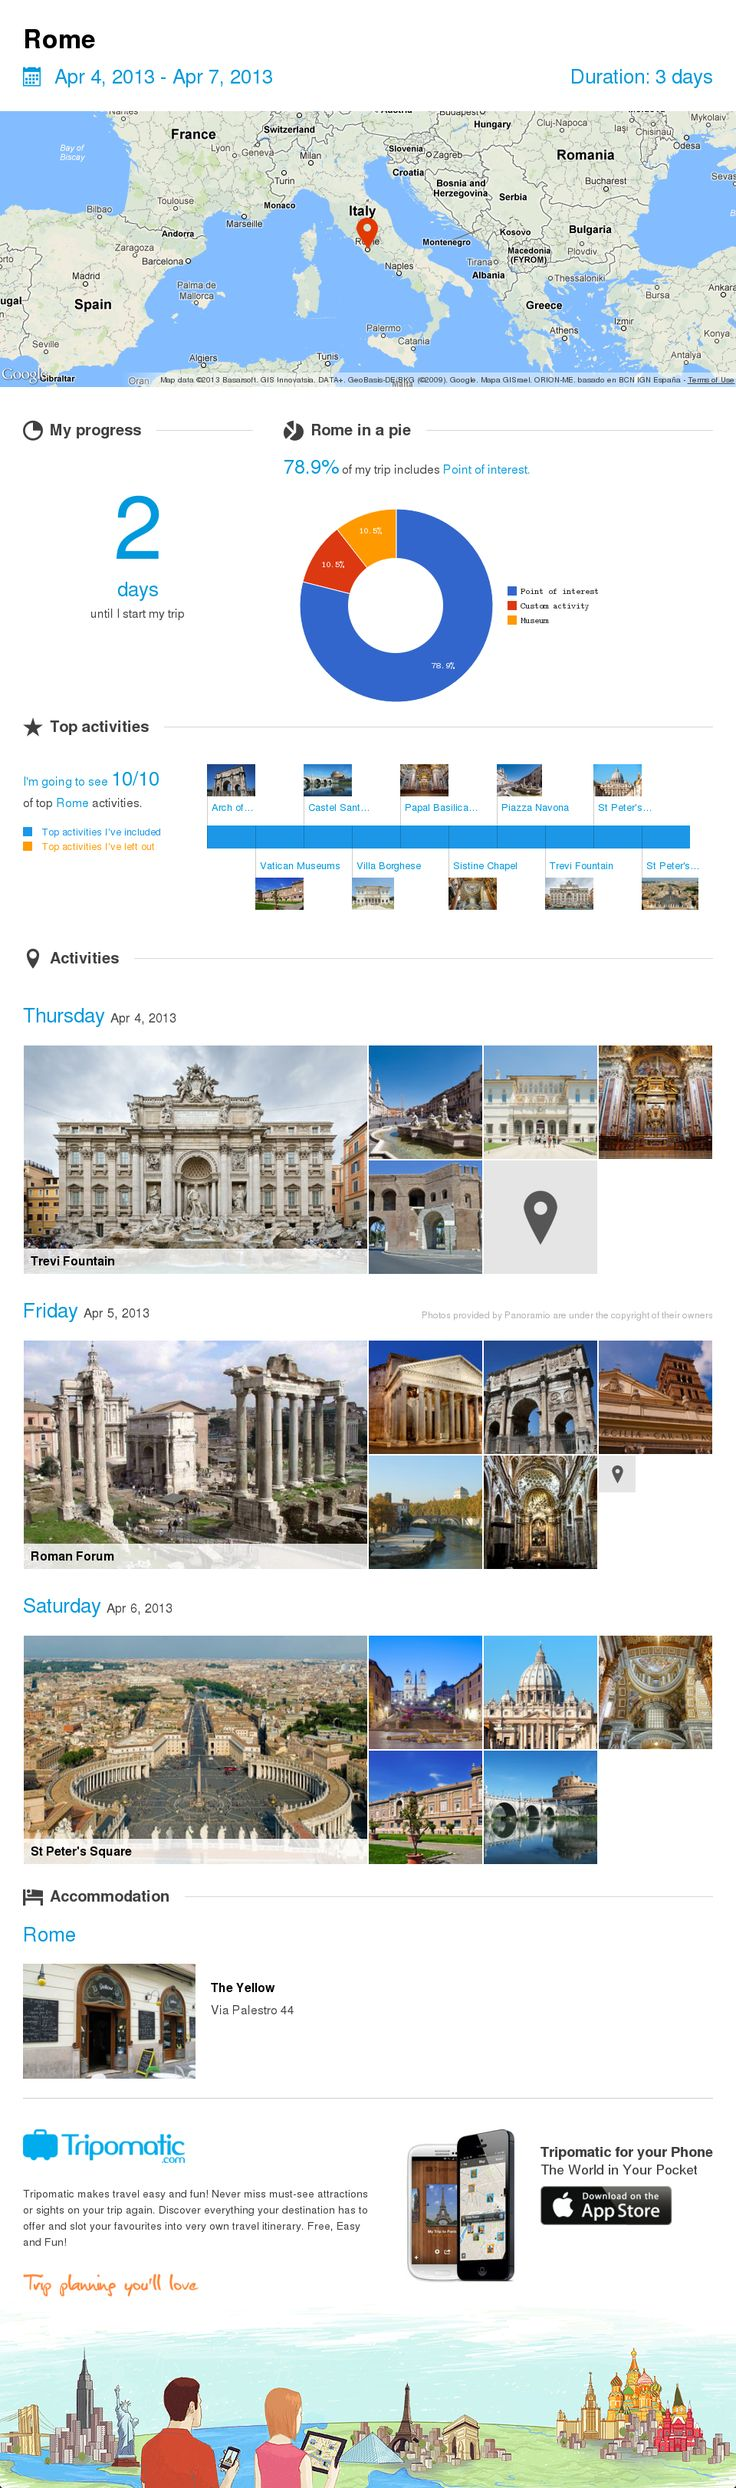 By far the best website I've found yet for planning a trip in a condense, easy to navigate way...  Rome, here I come! :)  Plus the website lets you create custom maps for each day that you will be traveling, complete with suggested routes to get to all the attractions and in a downloadable format :)